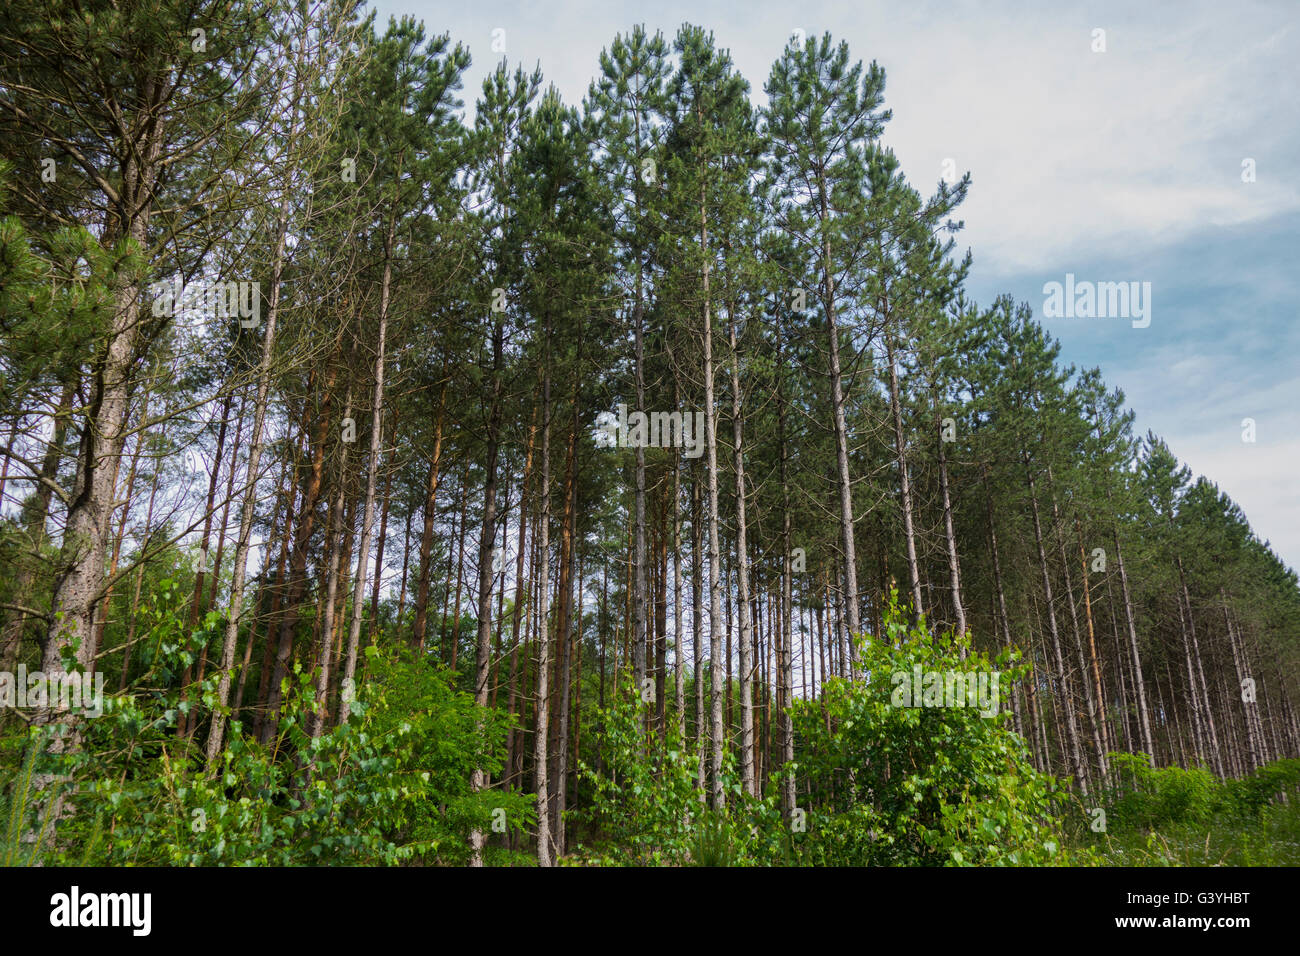 Common spruce, Picea abies, forest in Germany. Stock Photo